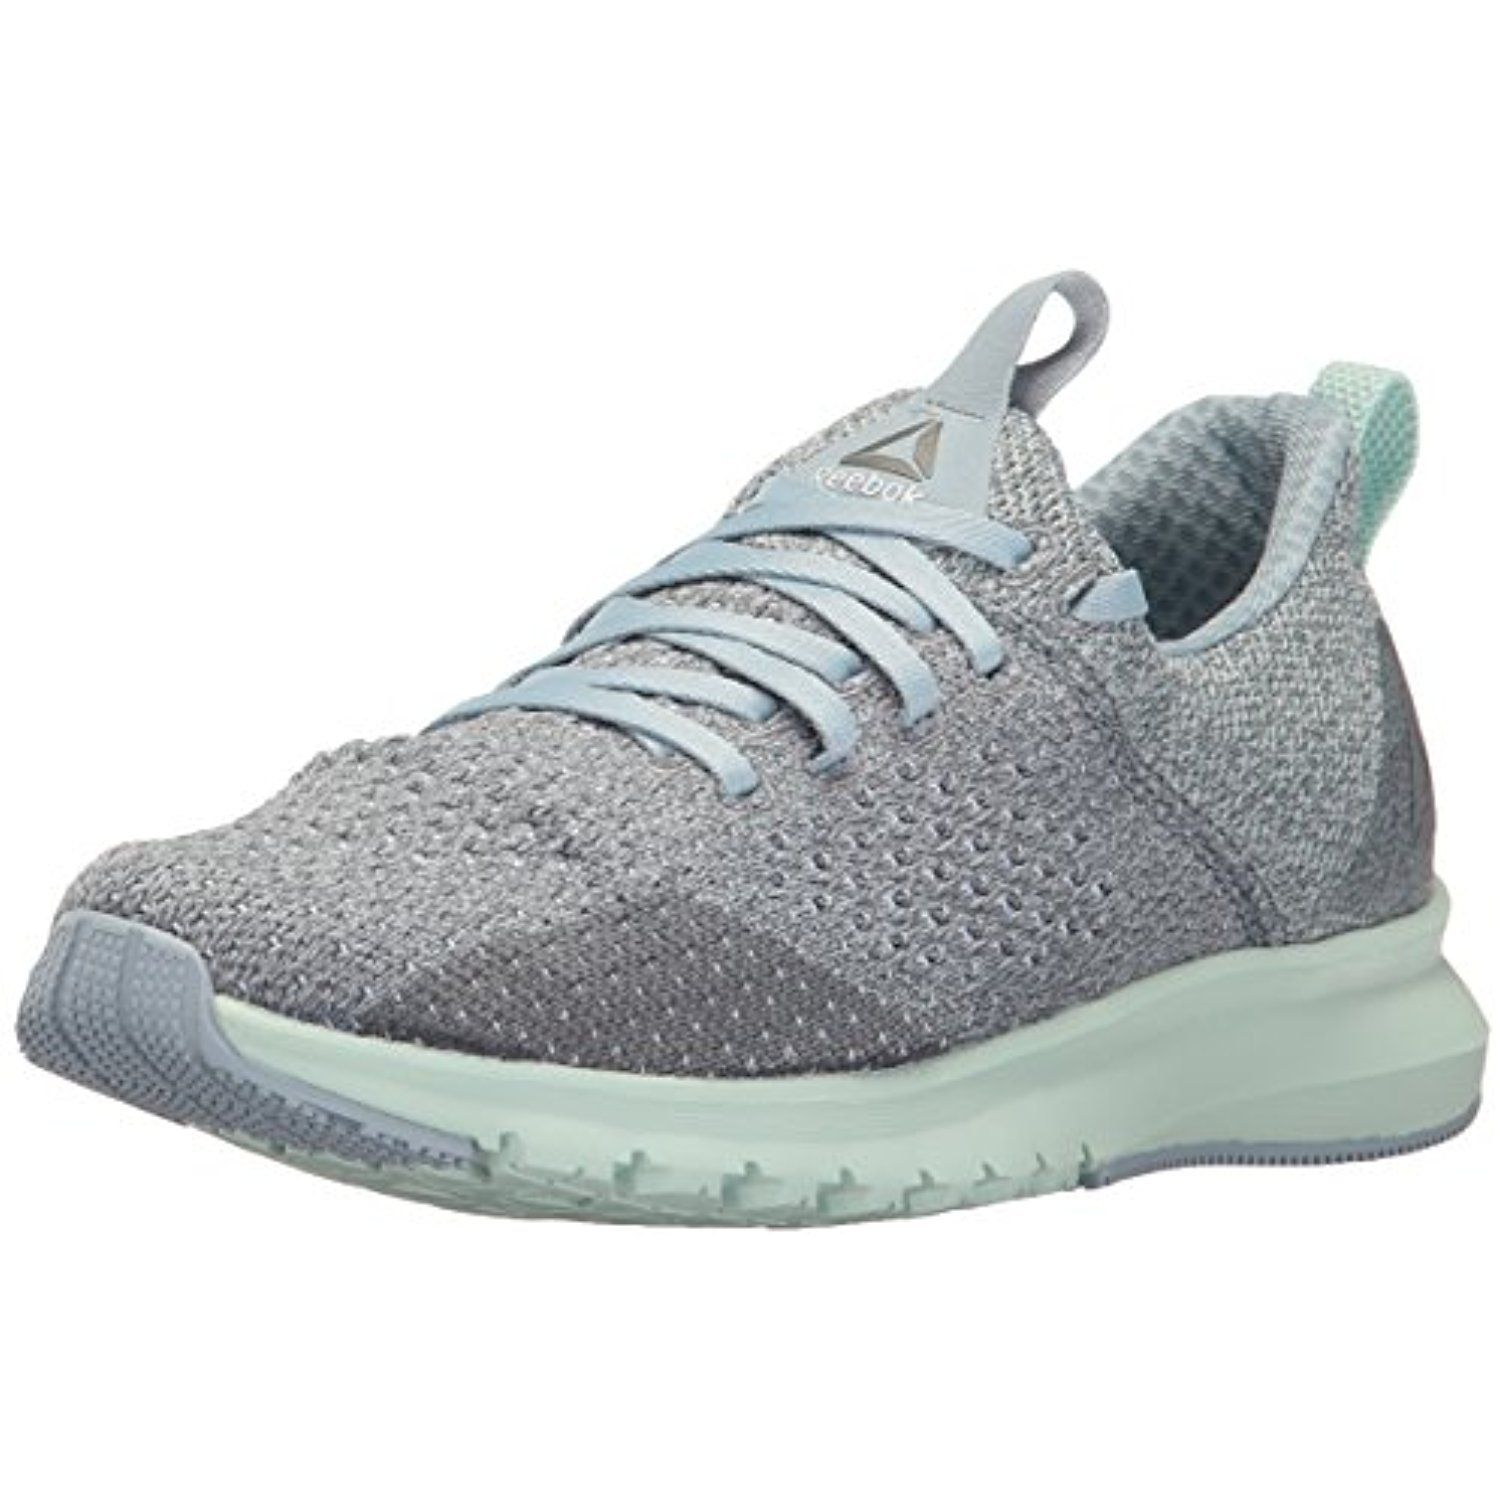 9e26ea296224 Reebok Women s Print Premier Ultk Running Shoe    Learn more by visiting  the image link. (This is an affiliate link)  Running